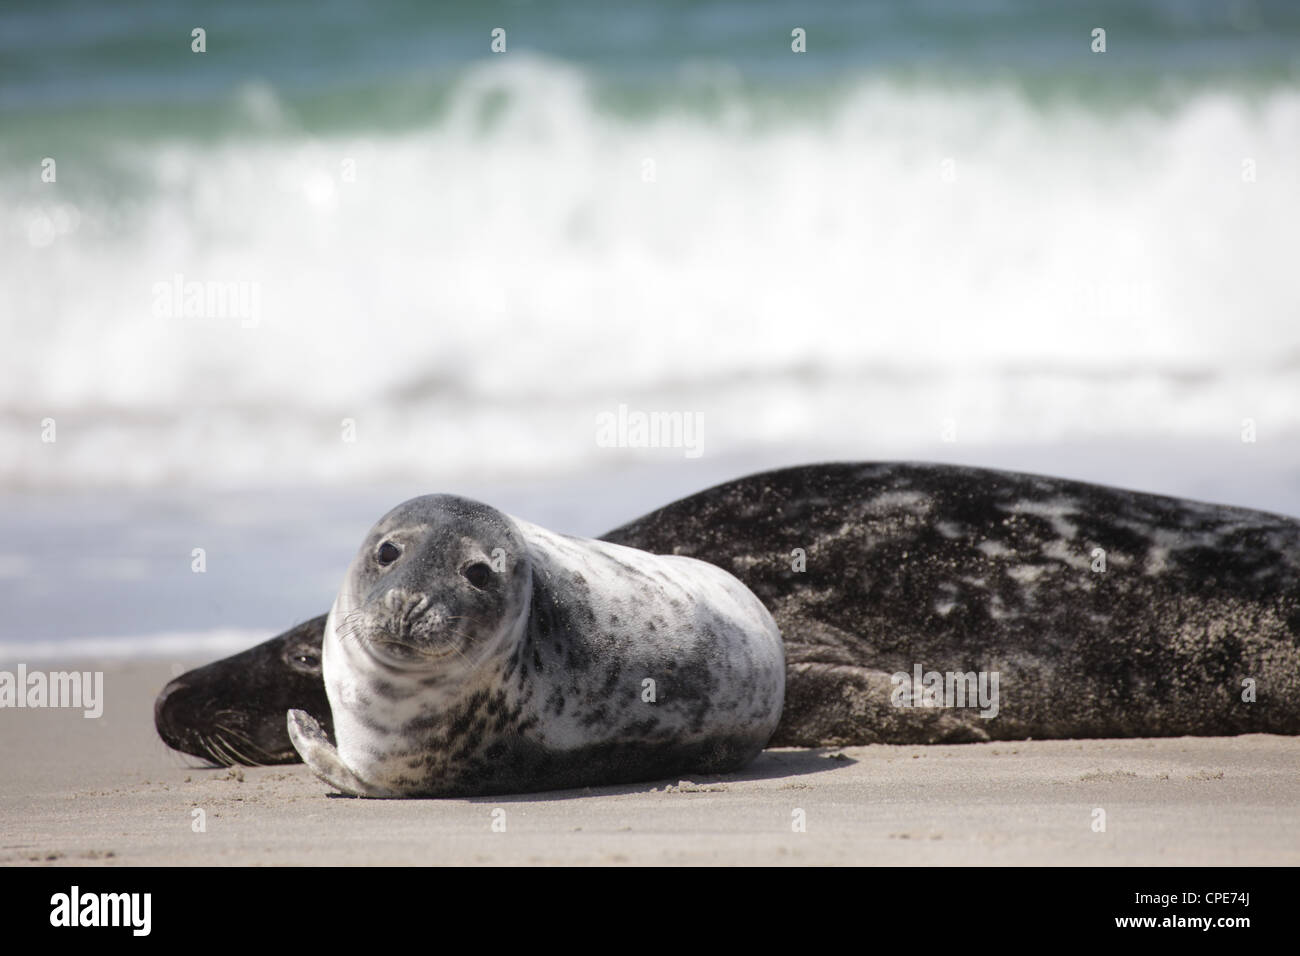 A pair of a juvenile and adult grey seals Halichoerus grypus lying on the beach of Helgoland, North Sea - Stock Image